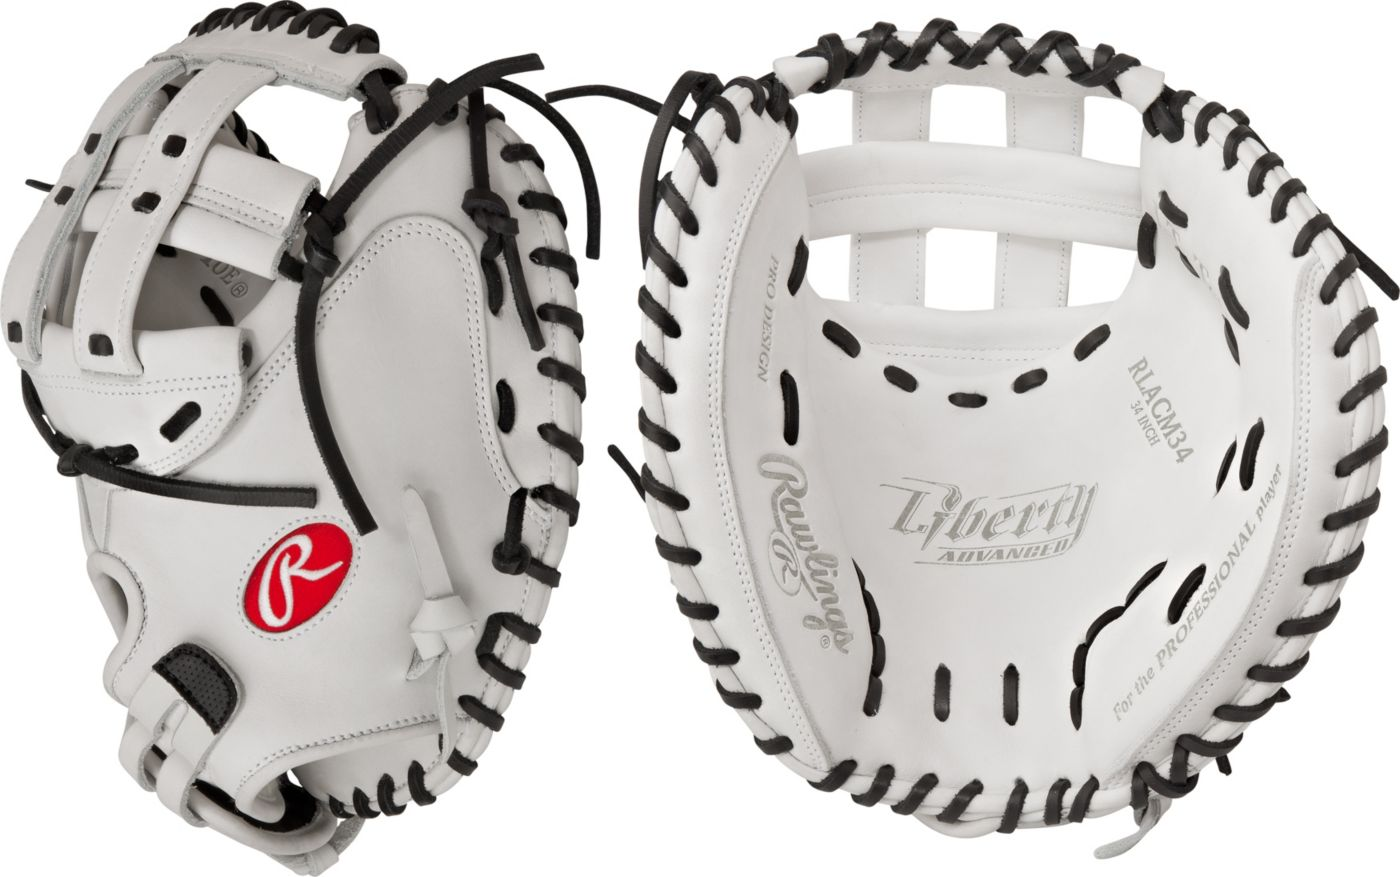 Rawlings 34'' Liberty Series Fastpitch Catcher's Mitt